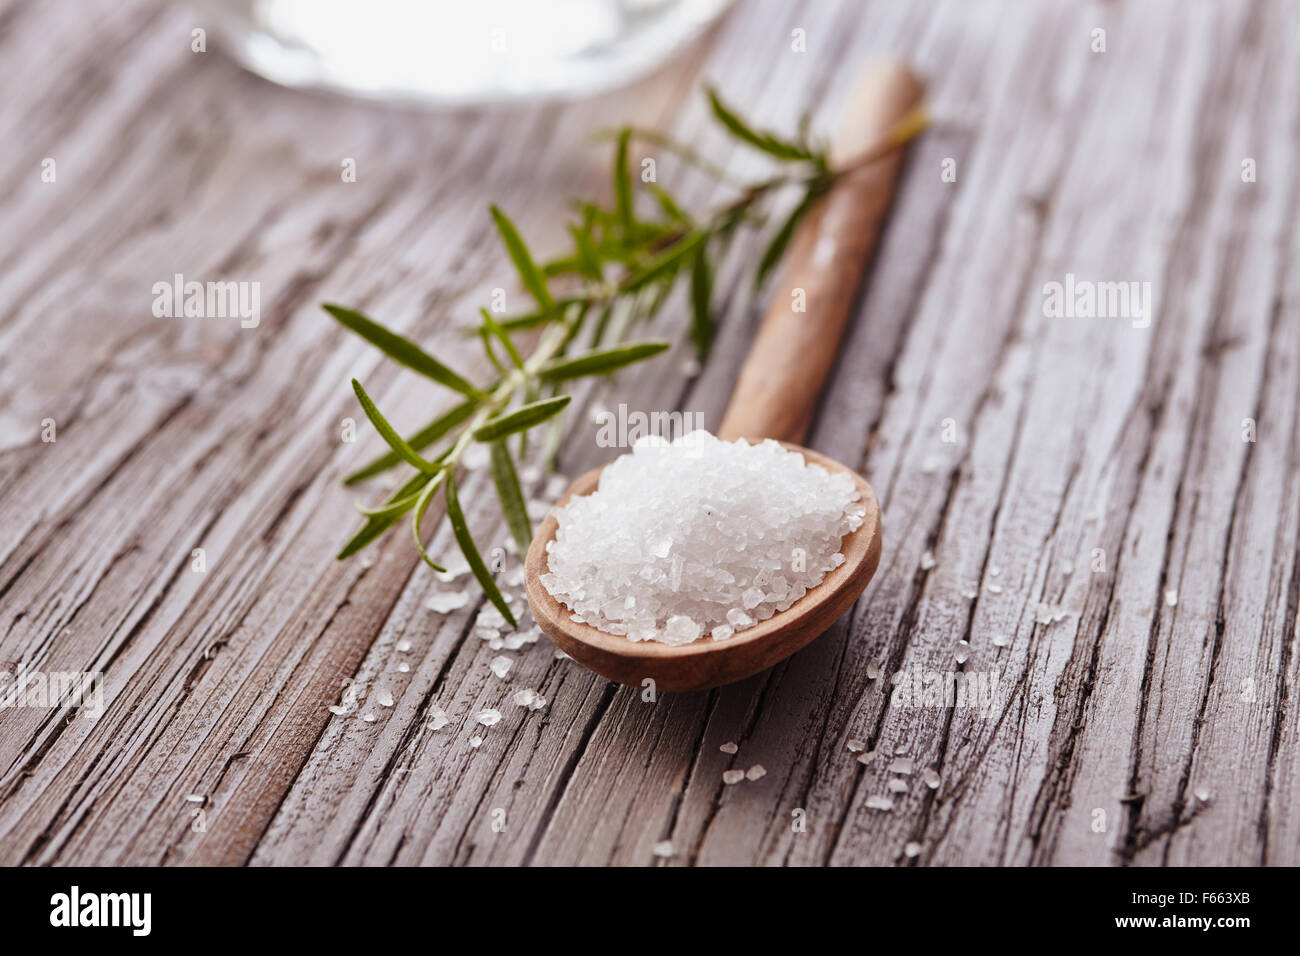 Salt crystals in a wooden spoon - Stock Image